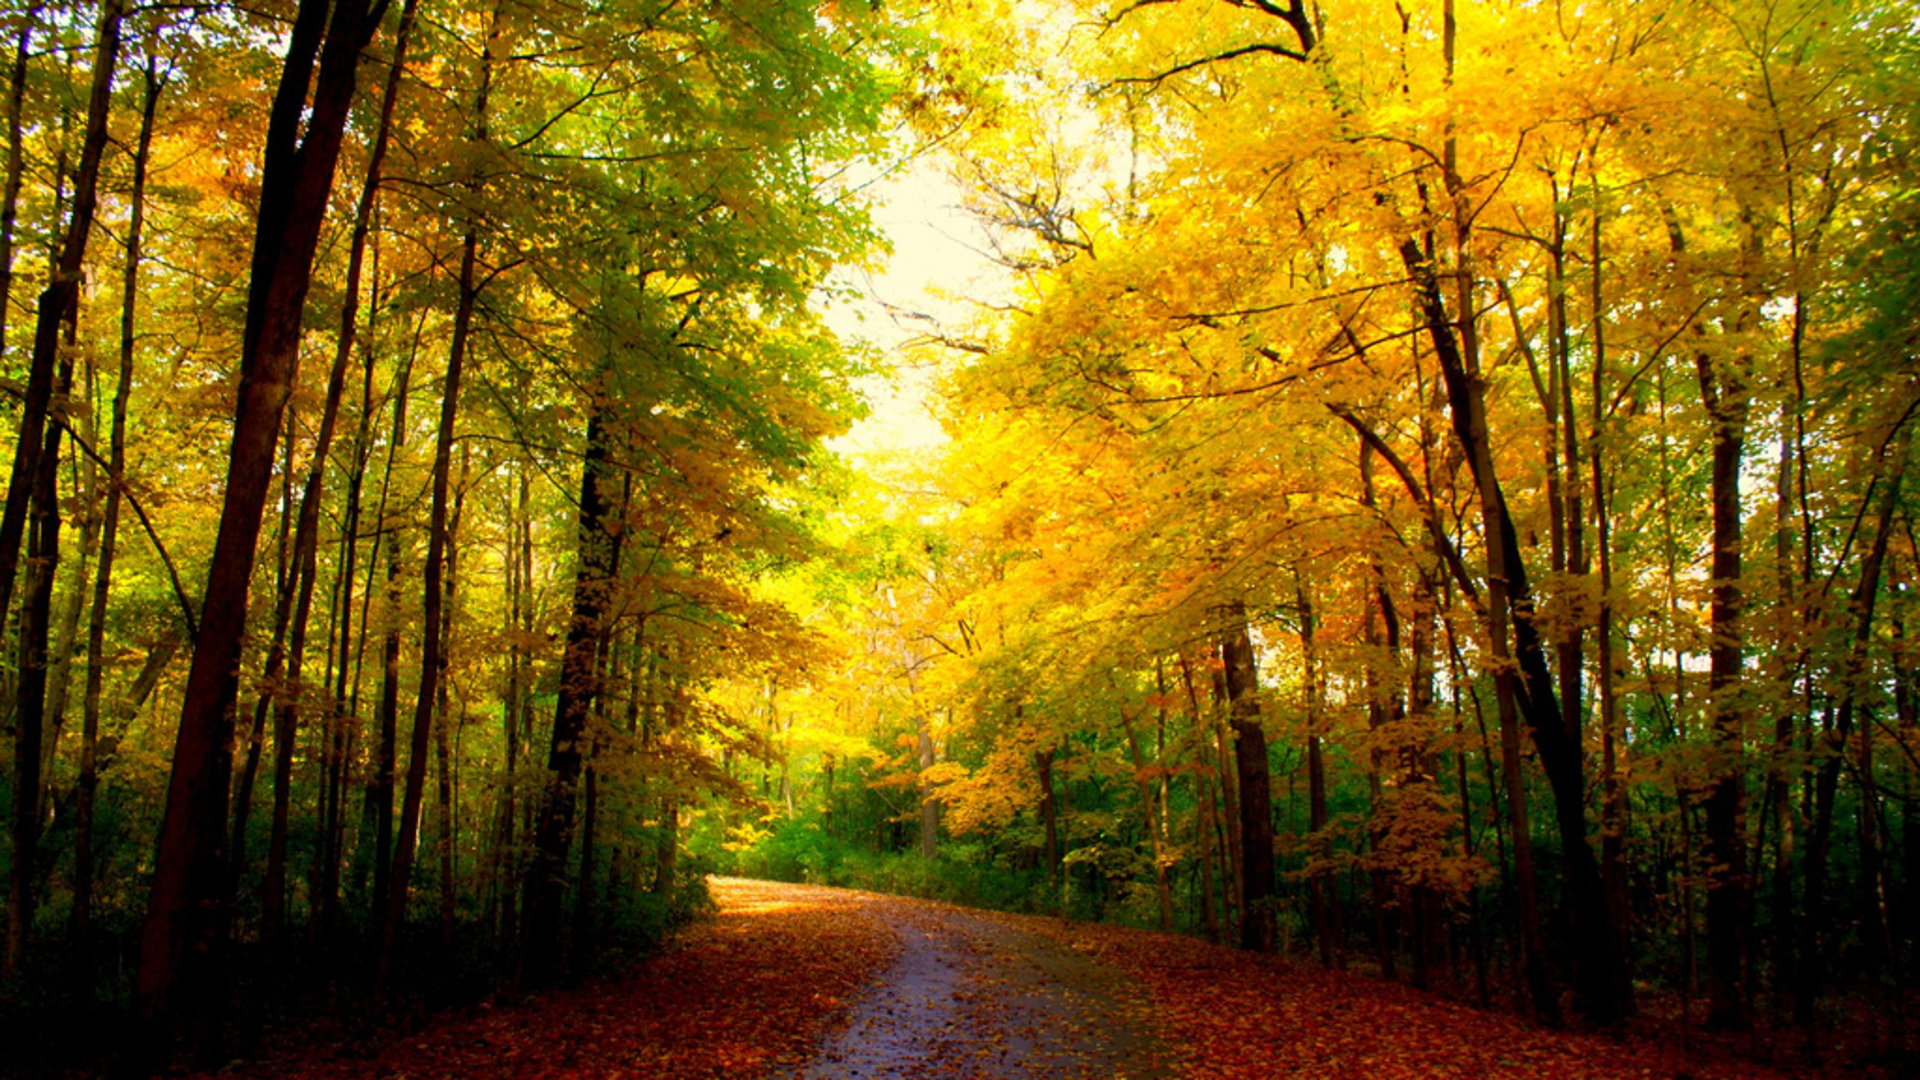 Fall Leaves Pathway Computer Wallpaper Autumn Colors Full Hd Wallpaper And Background Image